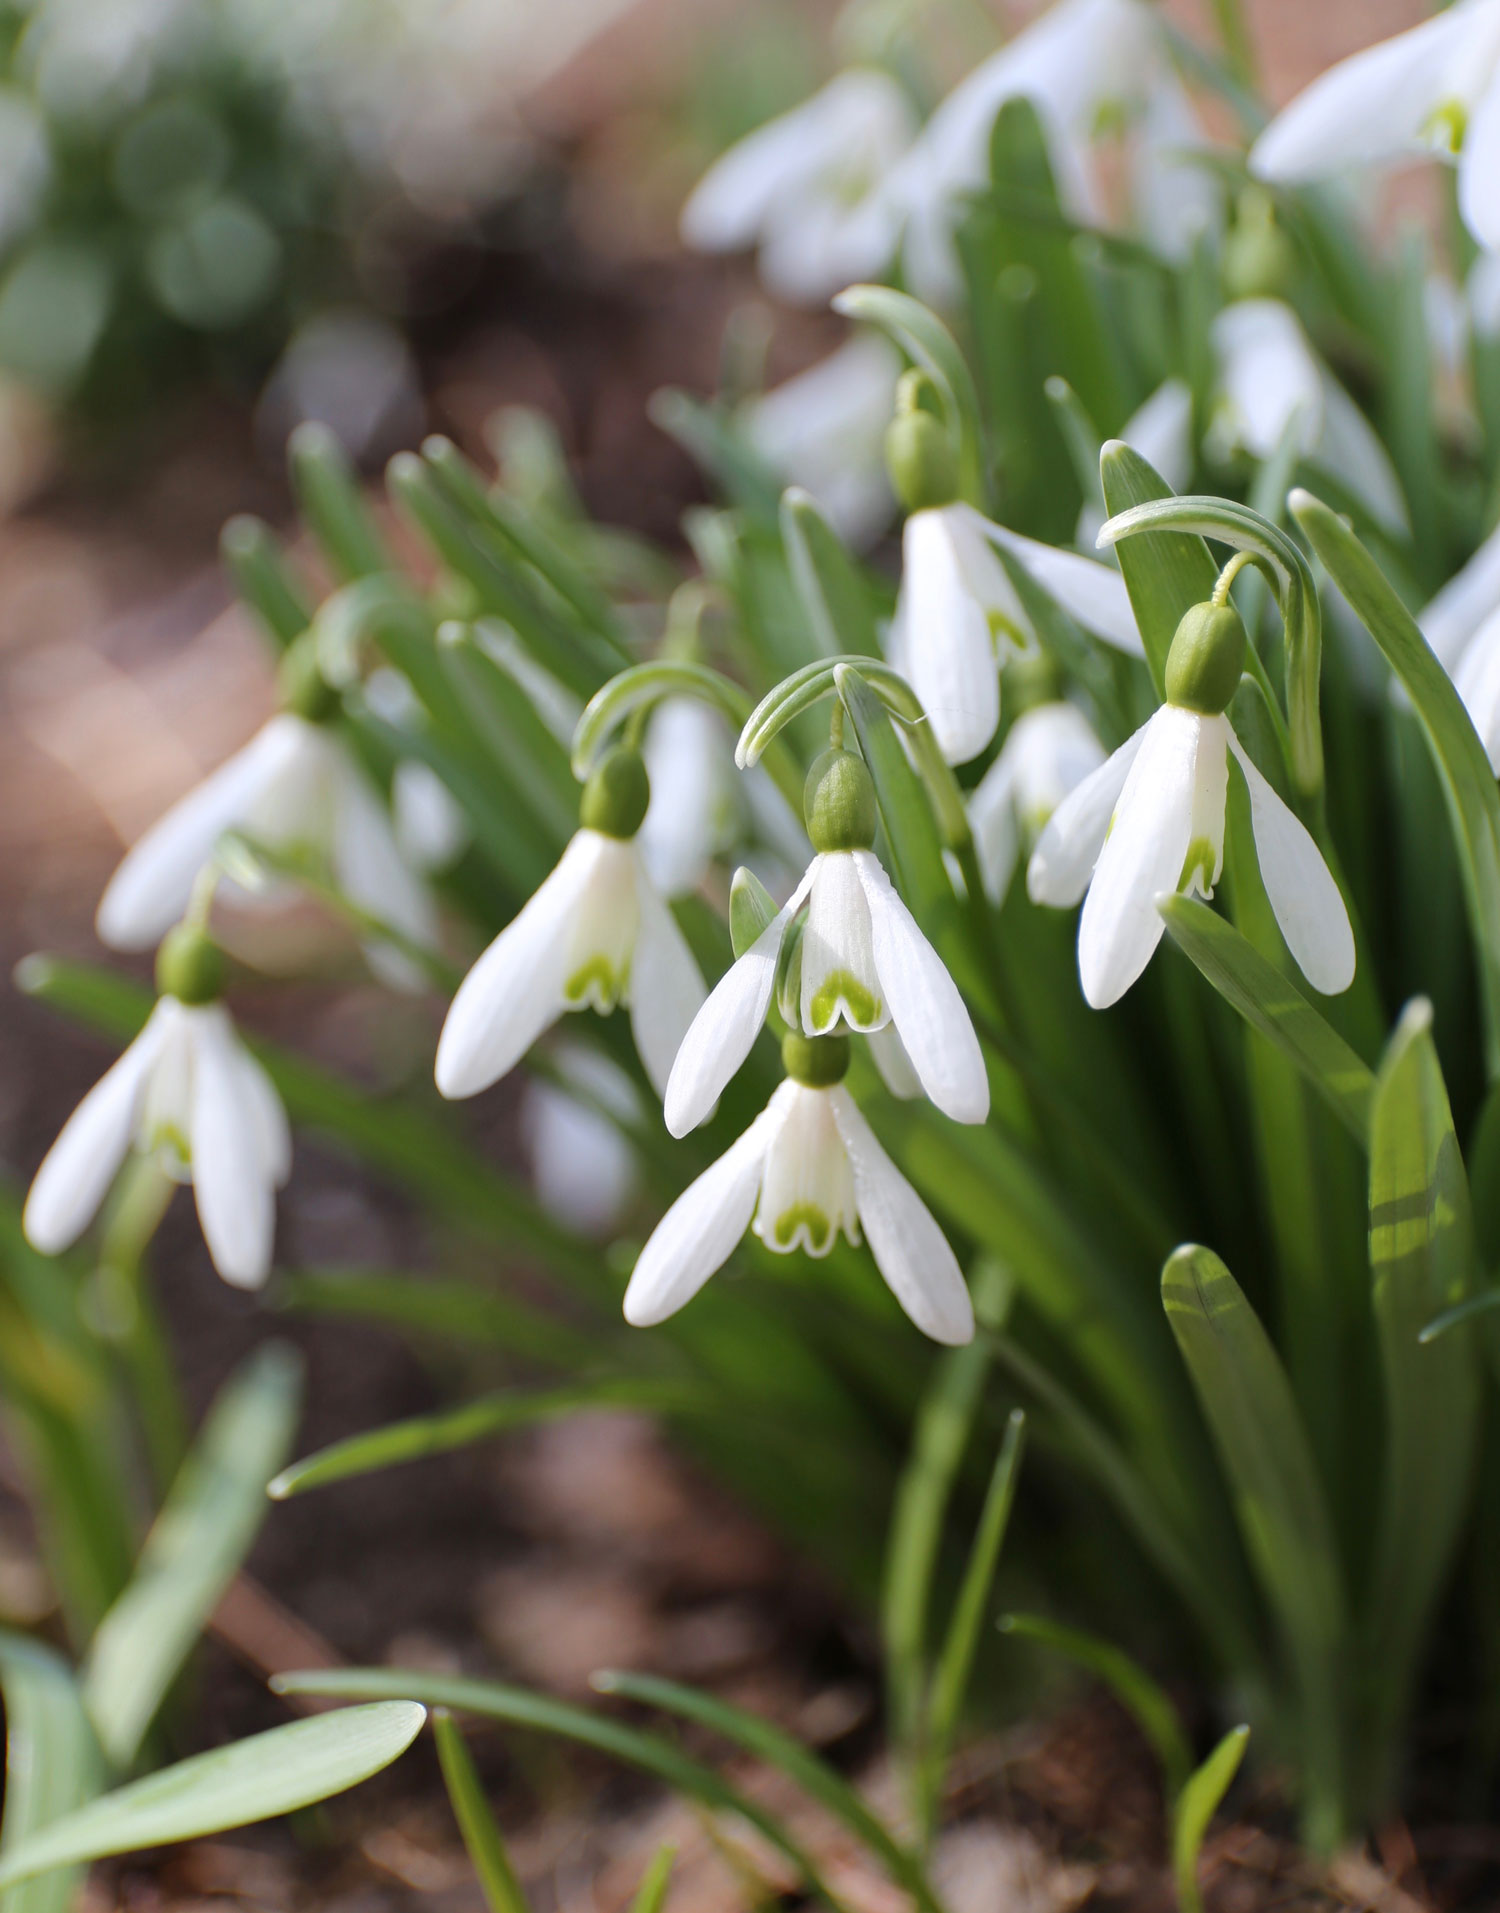 How to Grow Snowdrops - Longfield Gardens